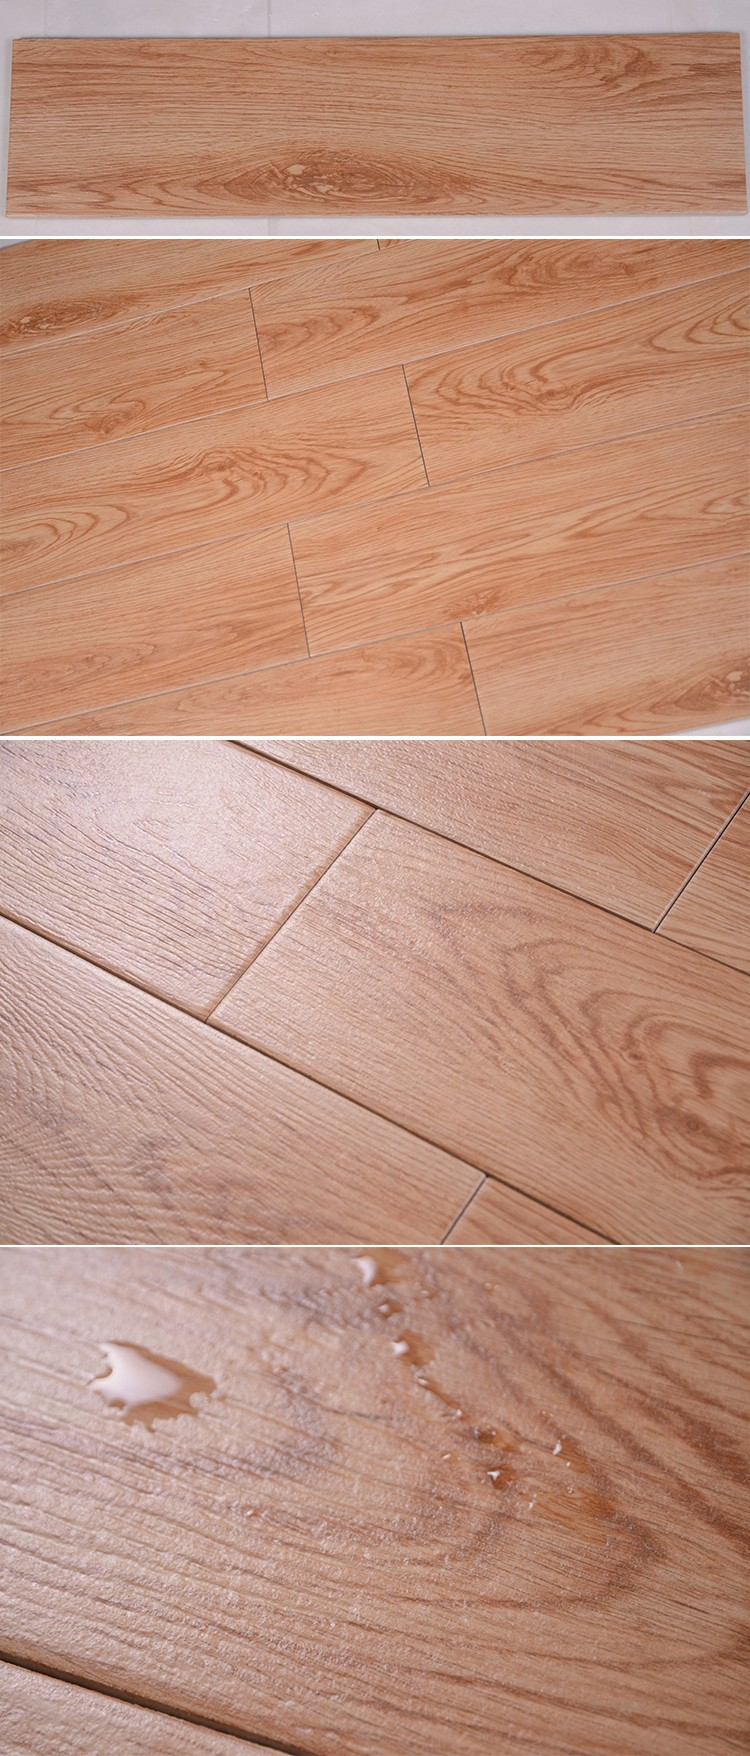 hyj15607m porcelain wood texture wood grain tile flooring